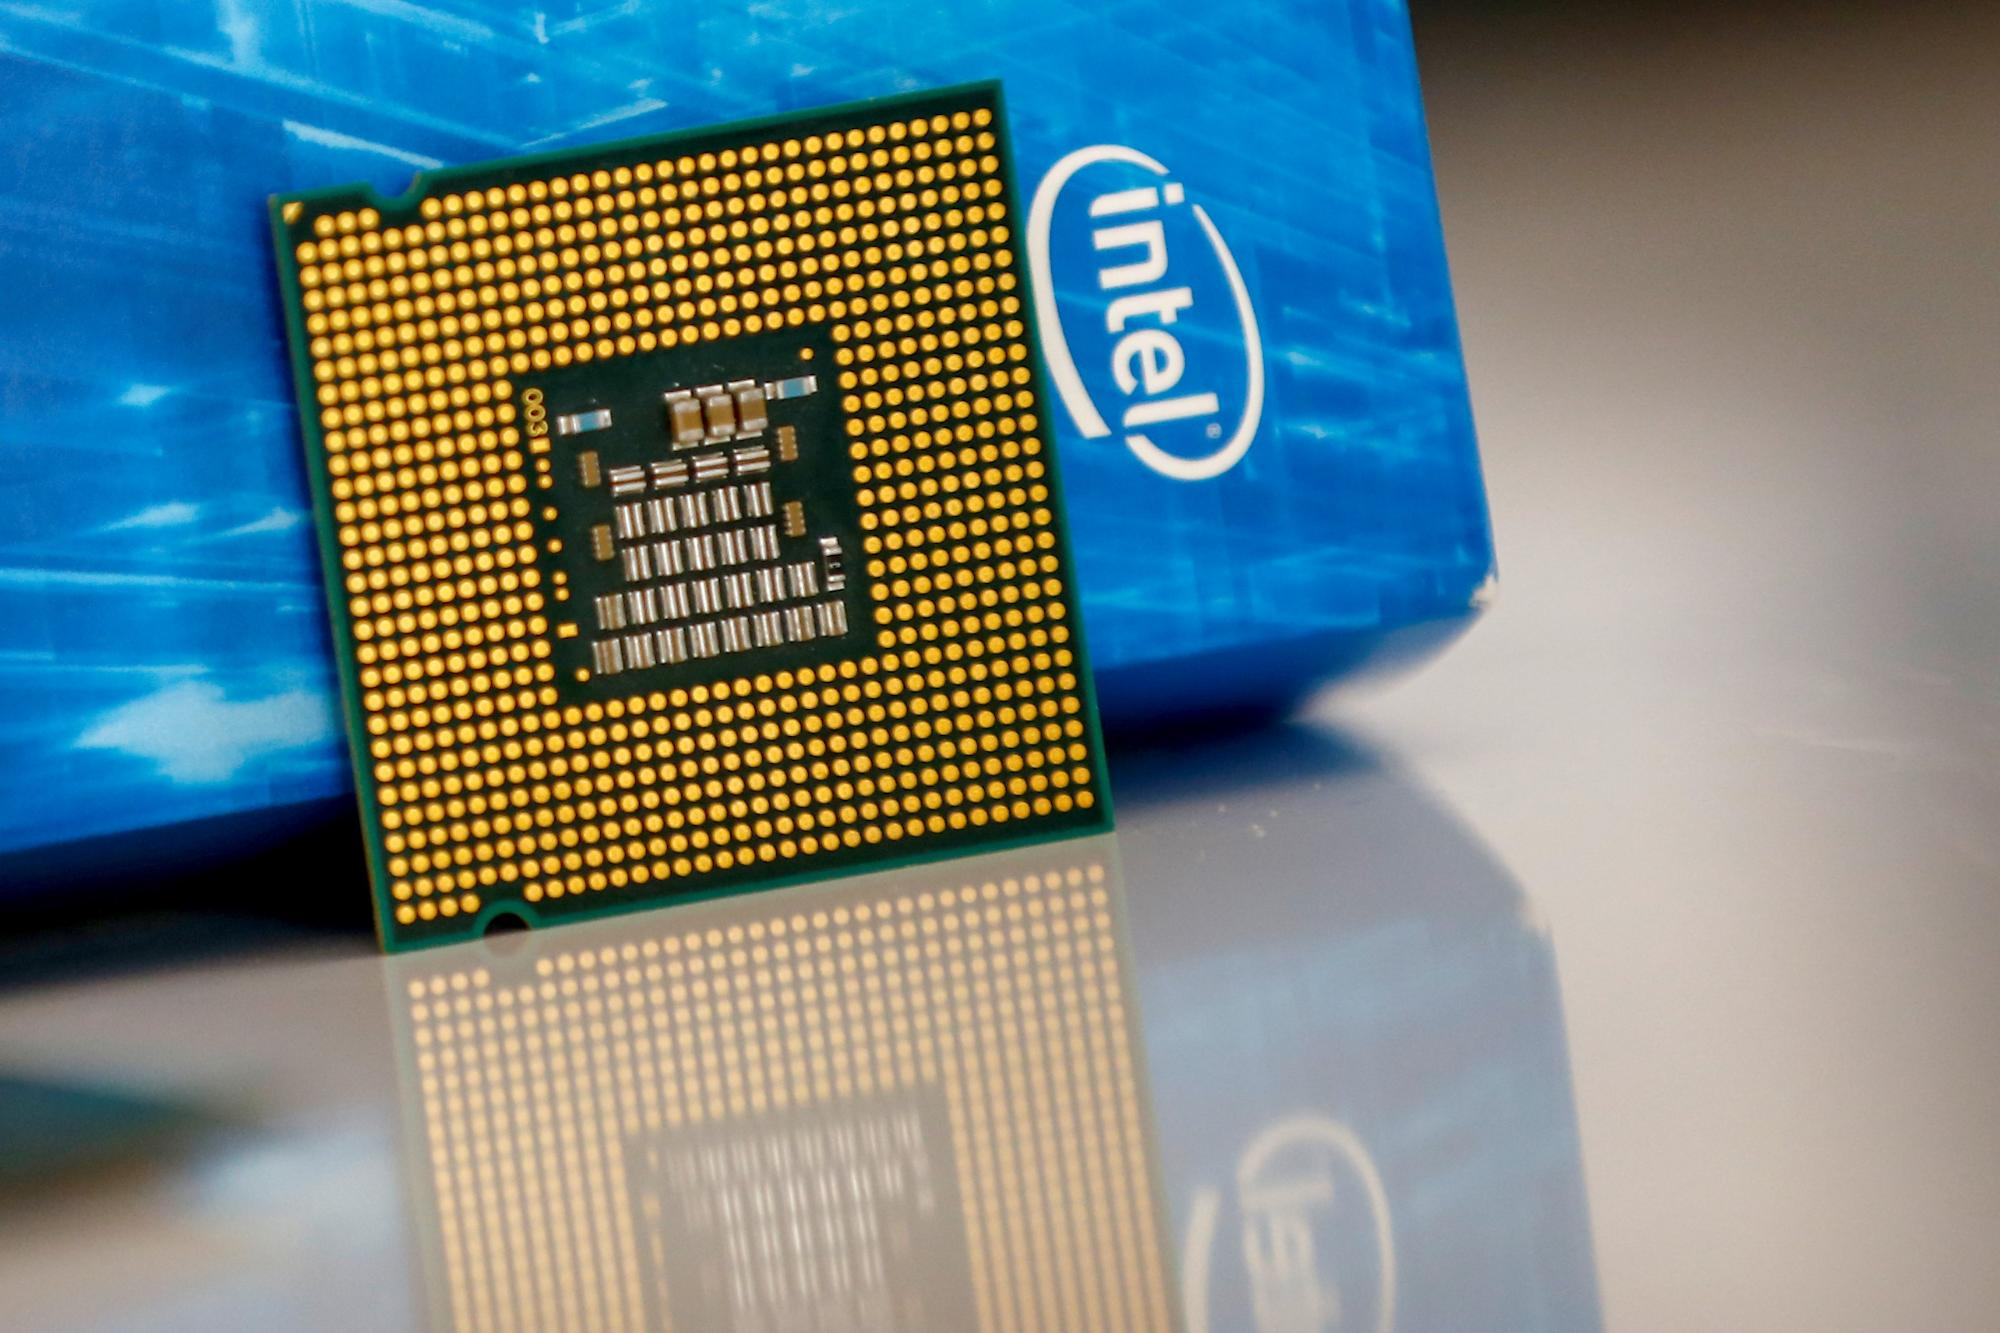 Intel CEO: Semiconductor shortage will take 'a couple years'